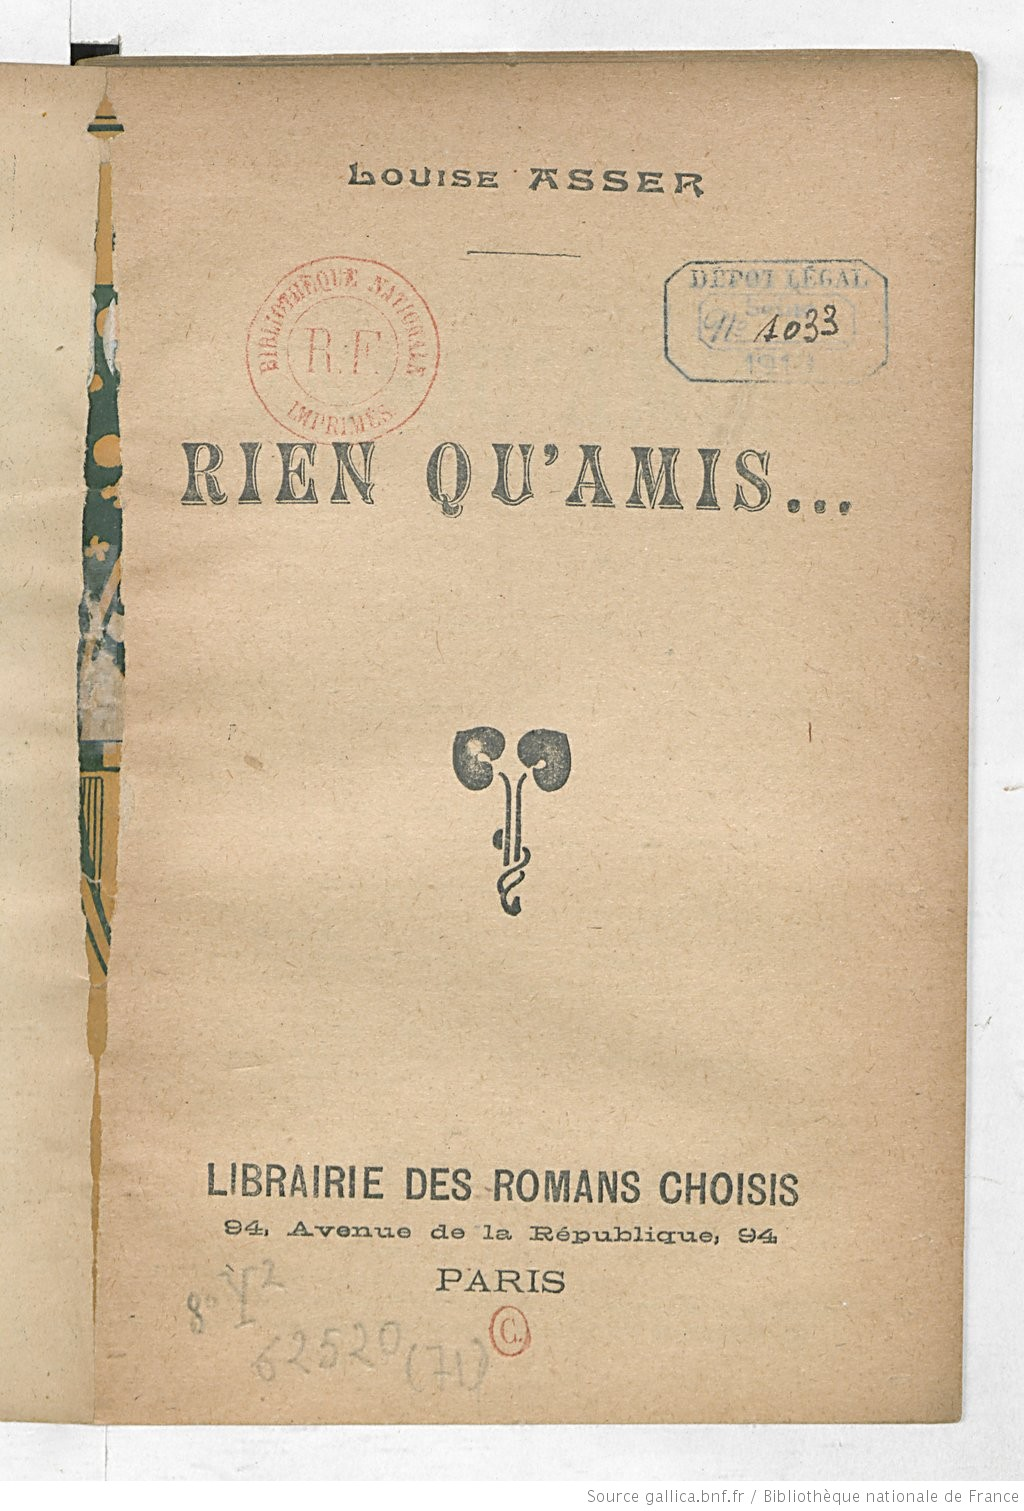 Title page of Rien Qu'Amis... by Louise Gruizet-Asser